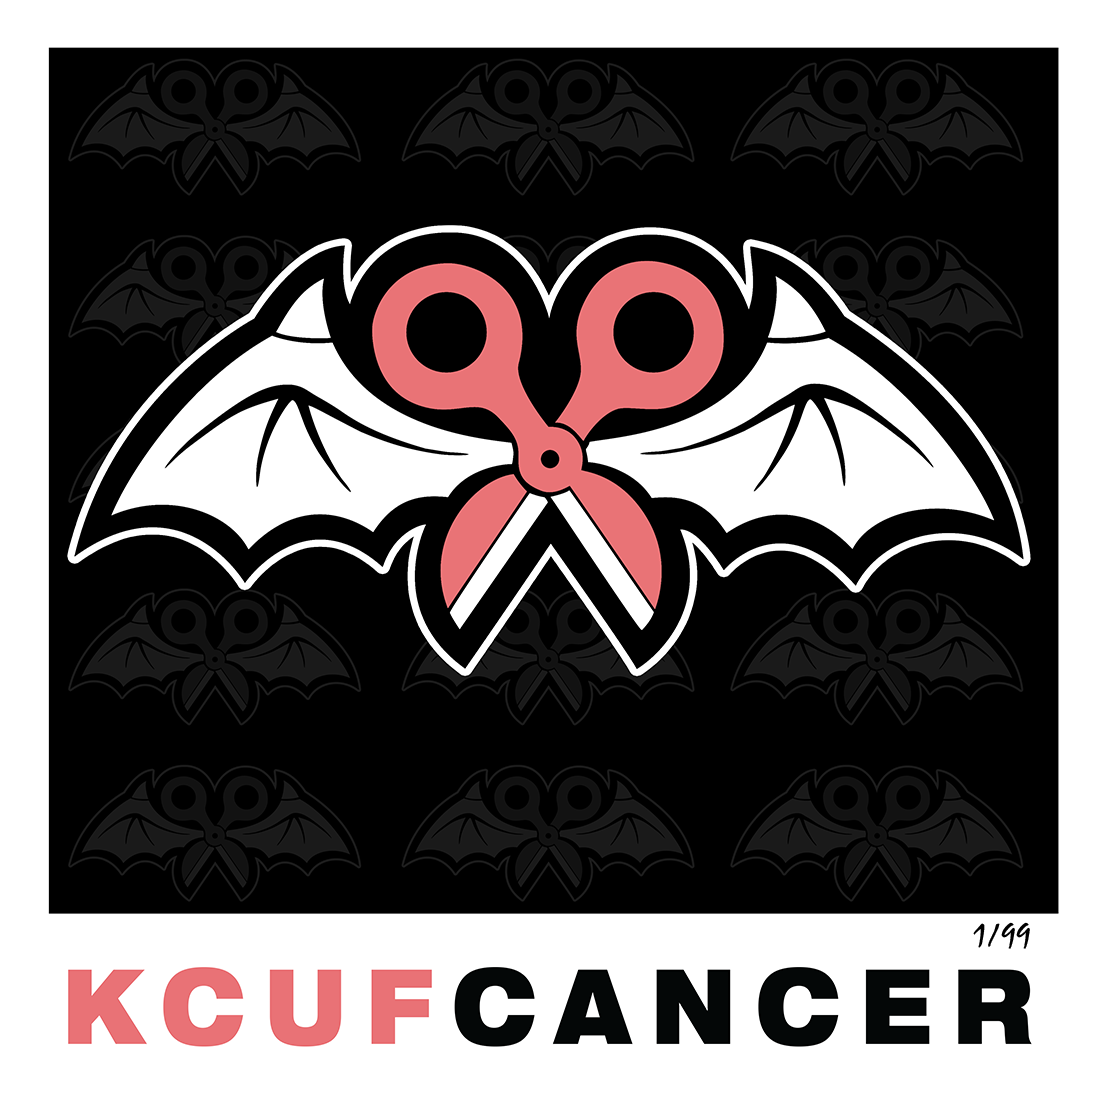 "Limited Edition KCUF CANCER 12"" x 12"" Signed Lithograph"